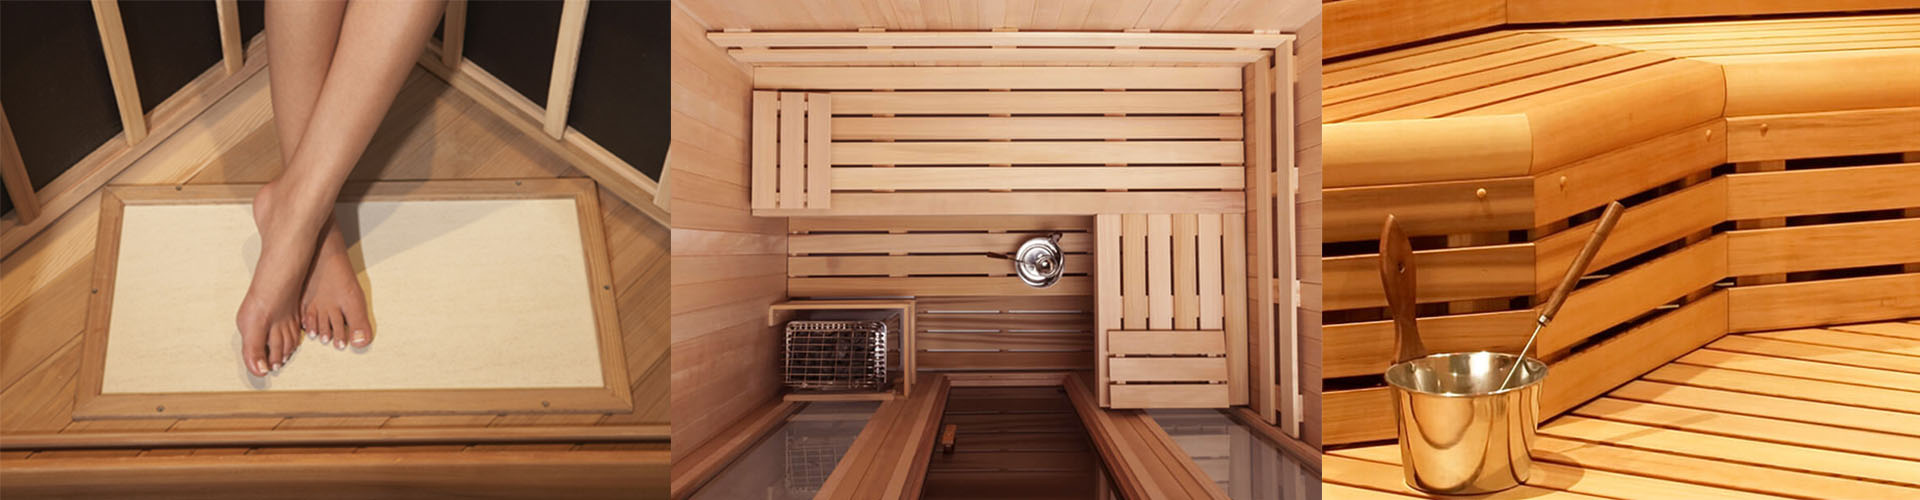 5 Simple Tips to Keep your Sauna in Tip-Top Shape